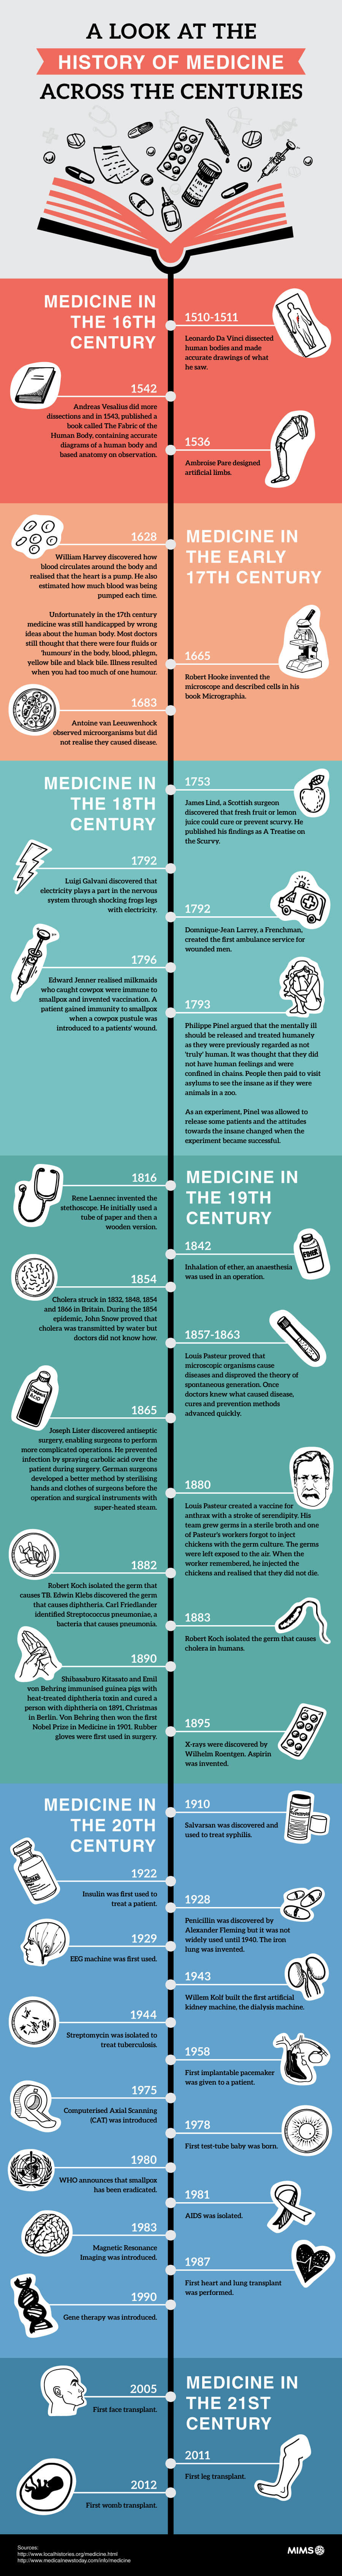 brief-history-of-medicine-across-the-centuries-infographic-plaza